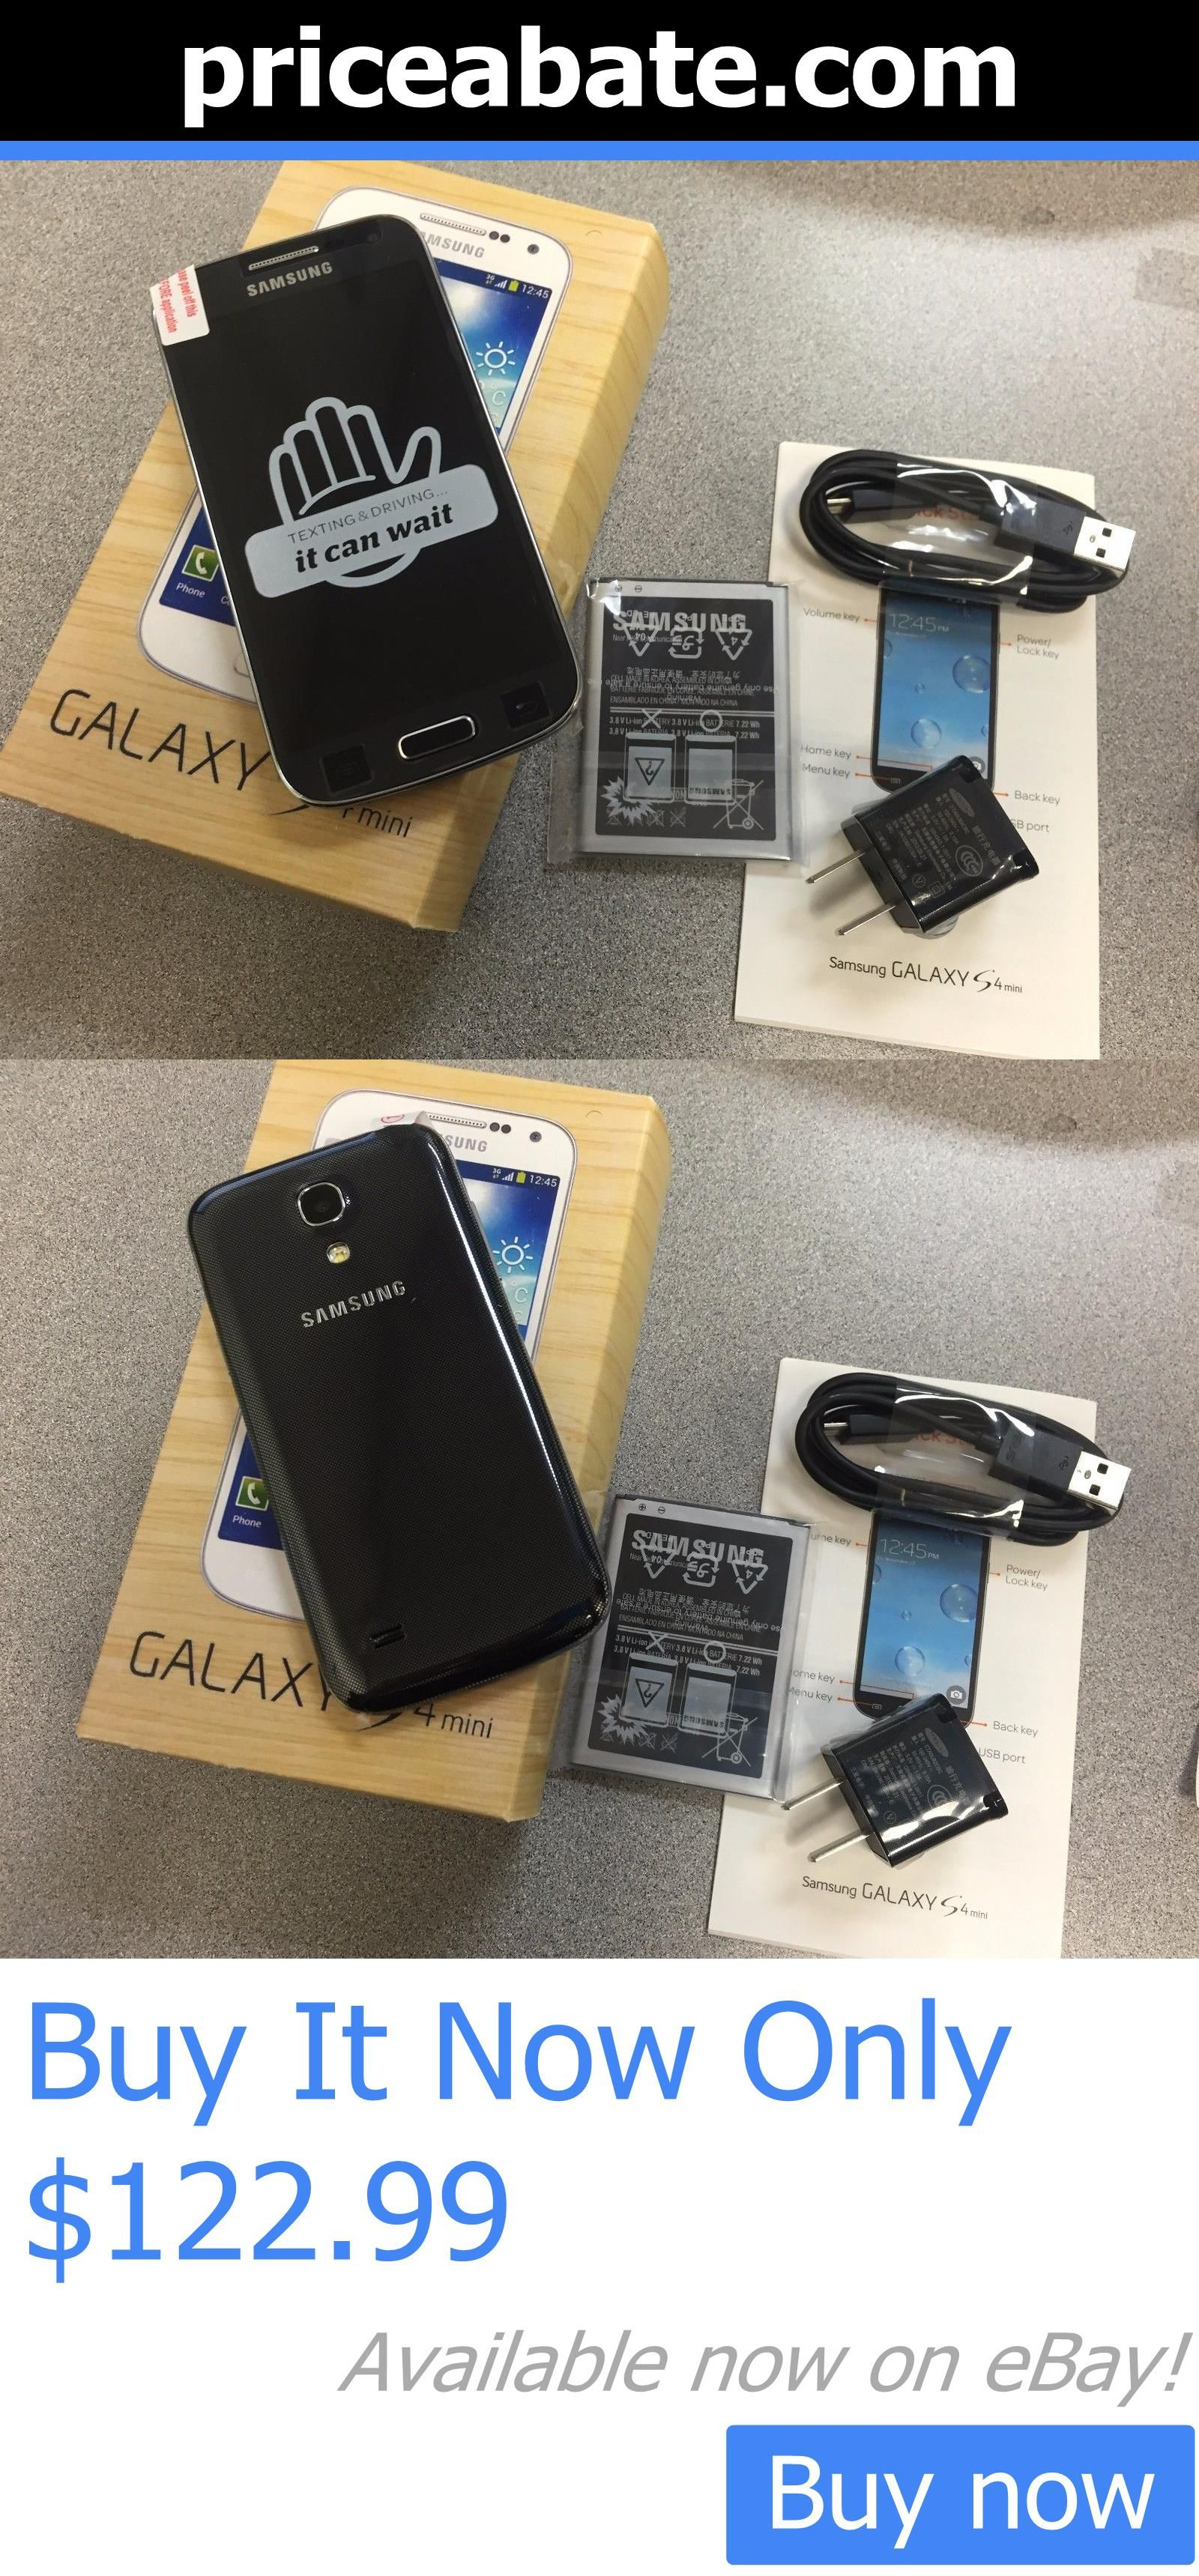 cell phones: New Inbox Samsung Galaxy S4 Mini Sgh-I257 16Gb Black (Atandt) Unlocked Lcd Shadow BUY IT NOW ONLY: $122.99 #priceabatecellphones OR #priceabate